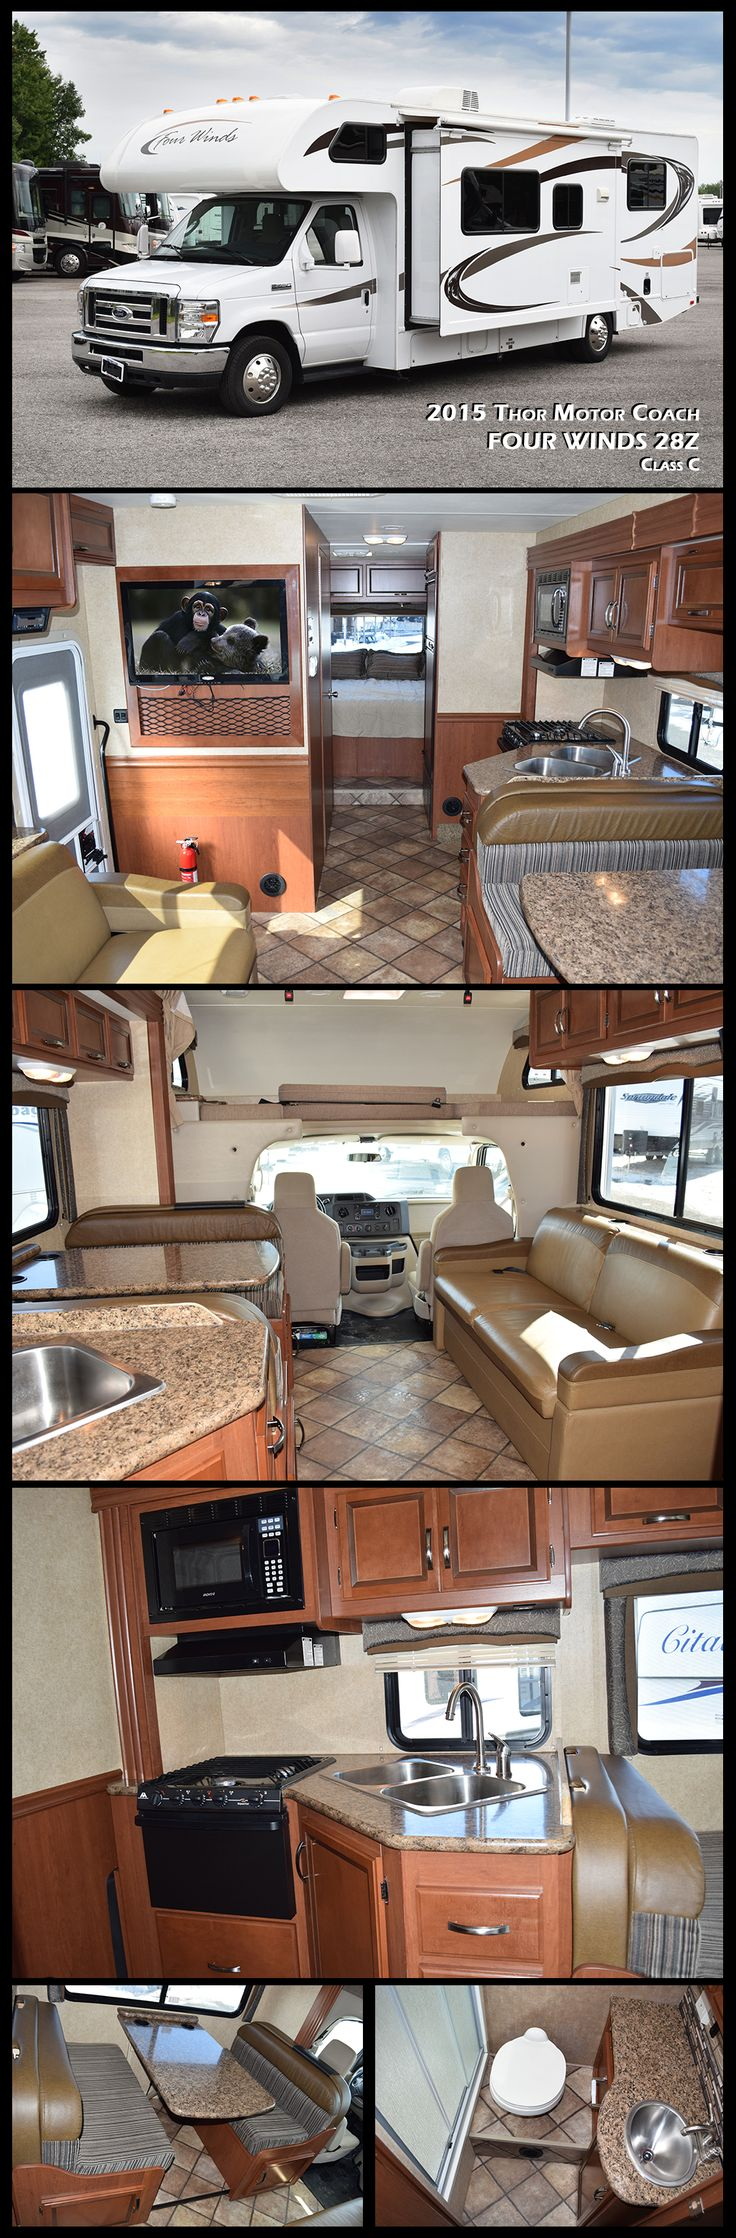 2015 thor motor coach four winds 18058 used class c rv for sale in north tonawanda new york